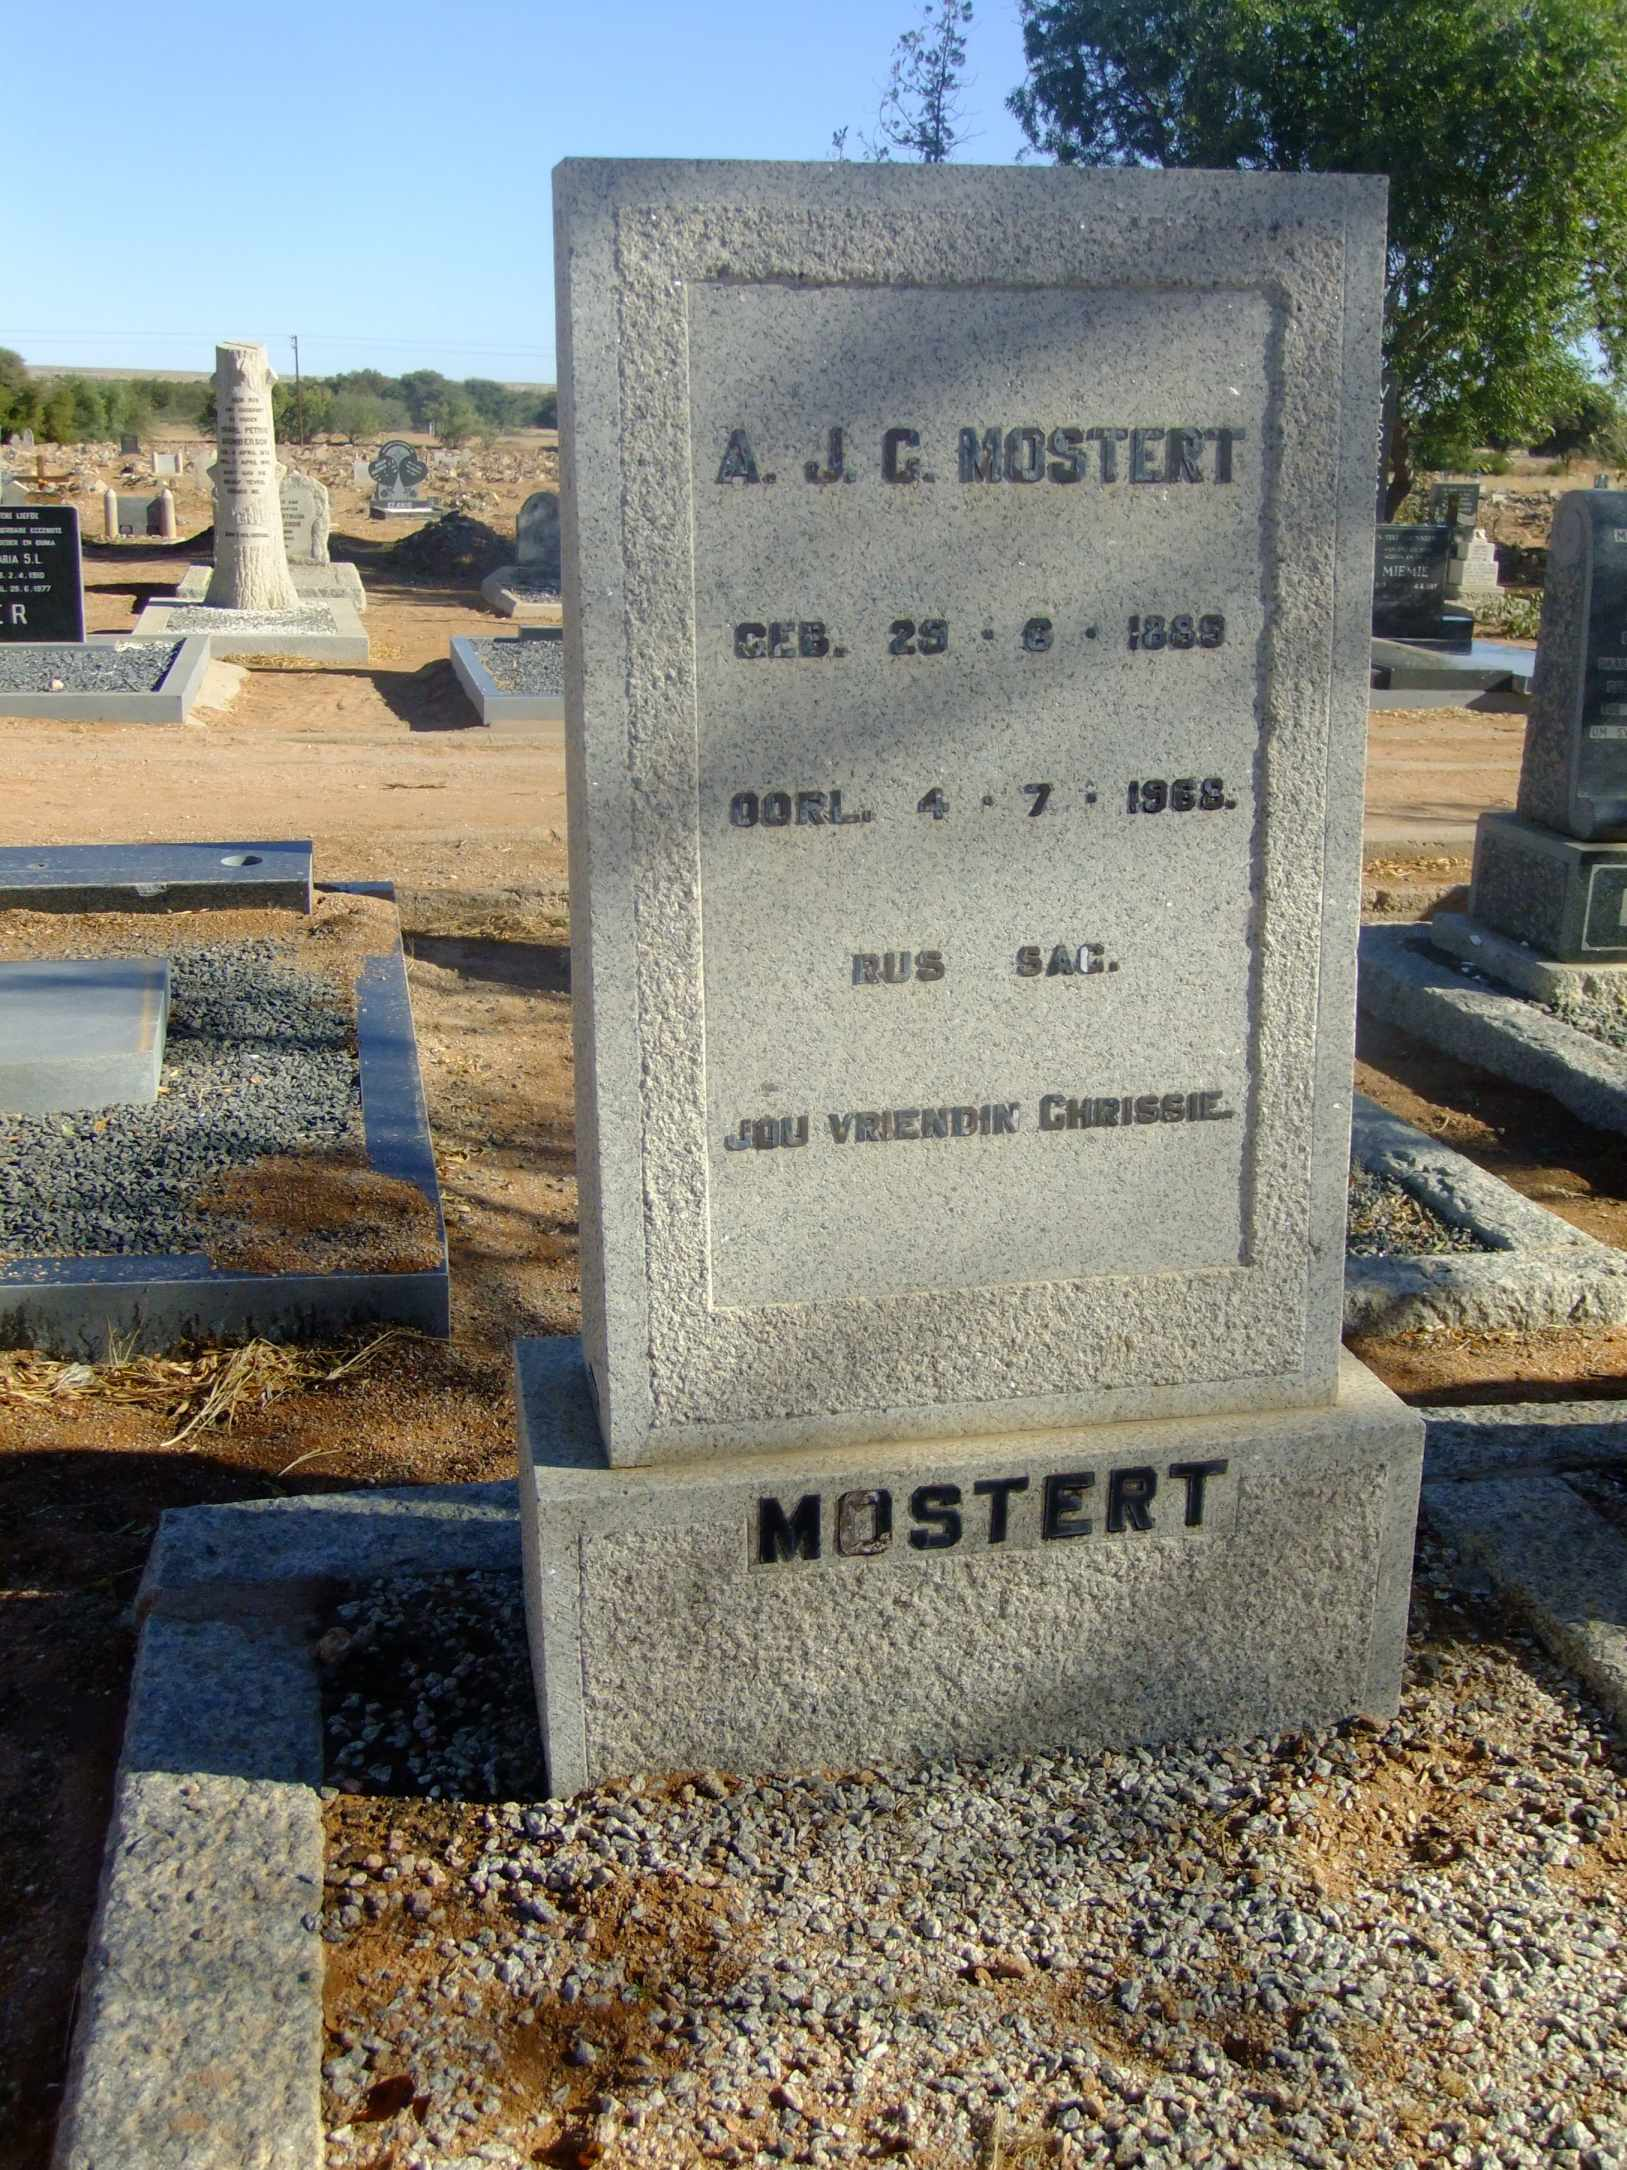 Mostert, AJC born 25 September 1889 died 04 July 1959